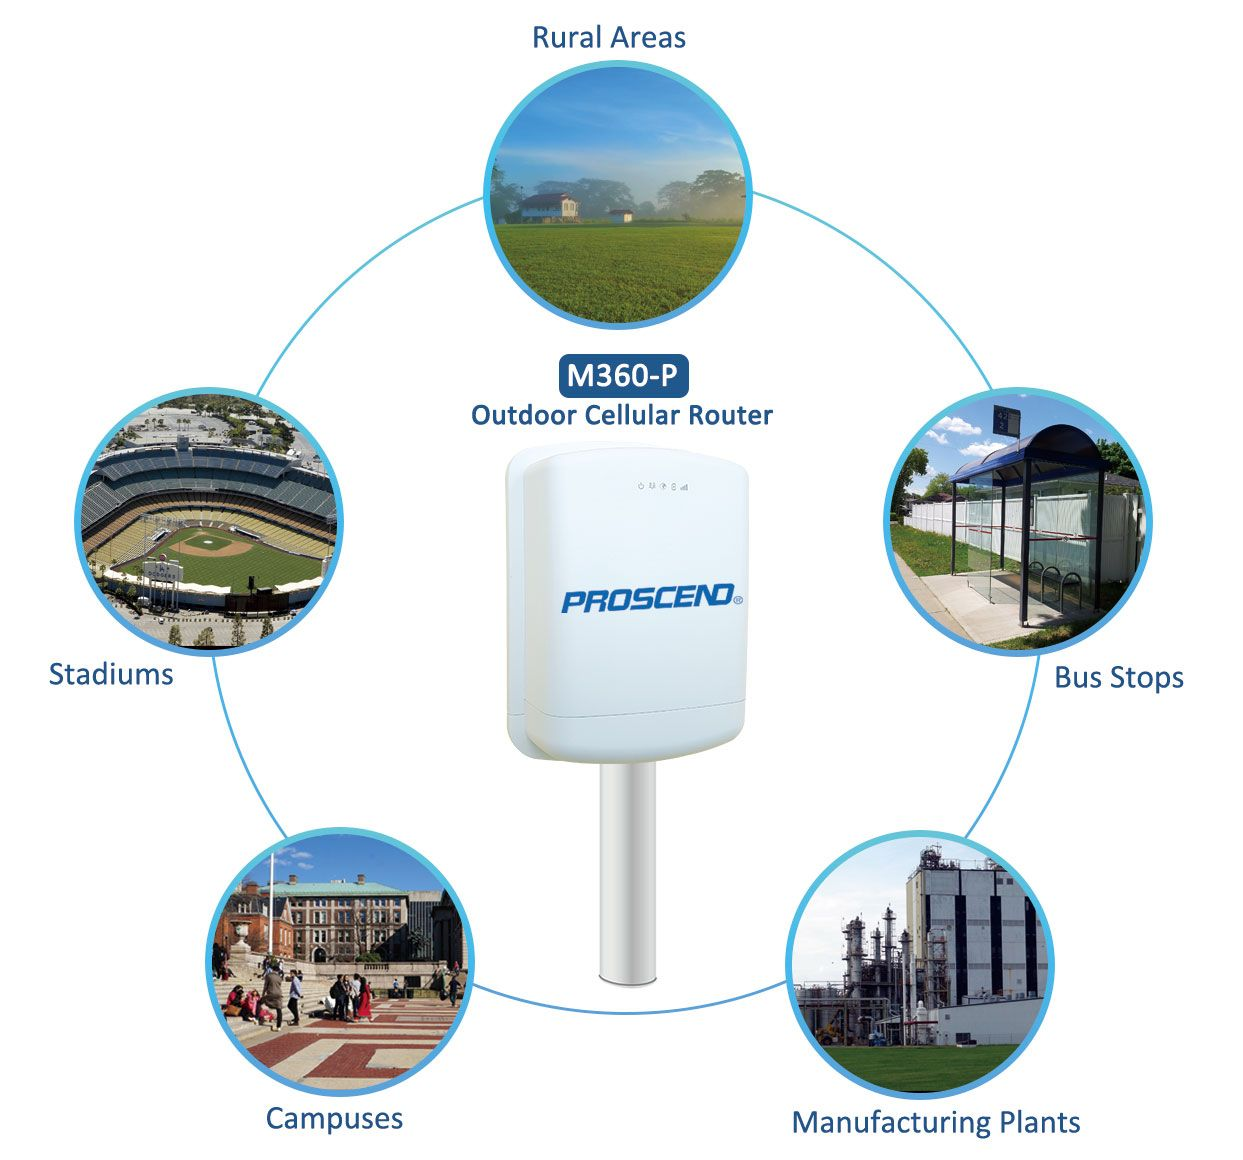 Proscend M360-P Outdoor Cellular Router enables Fixed Wireless connectivity in diverse vertical markets.